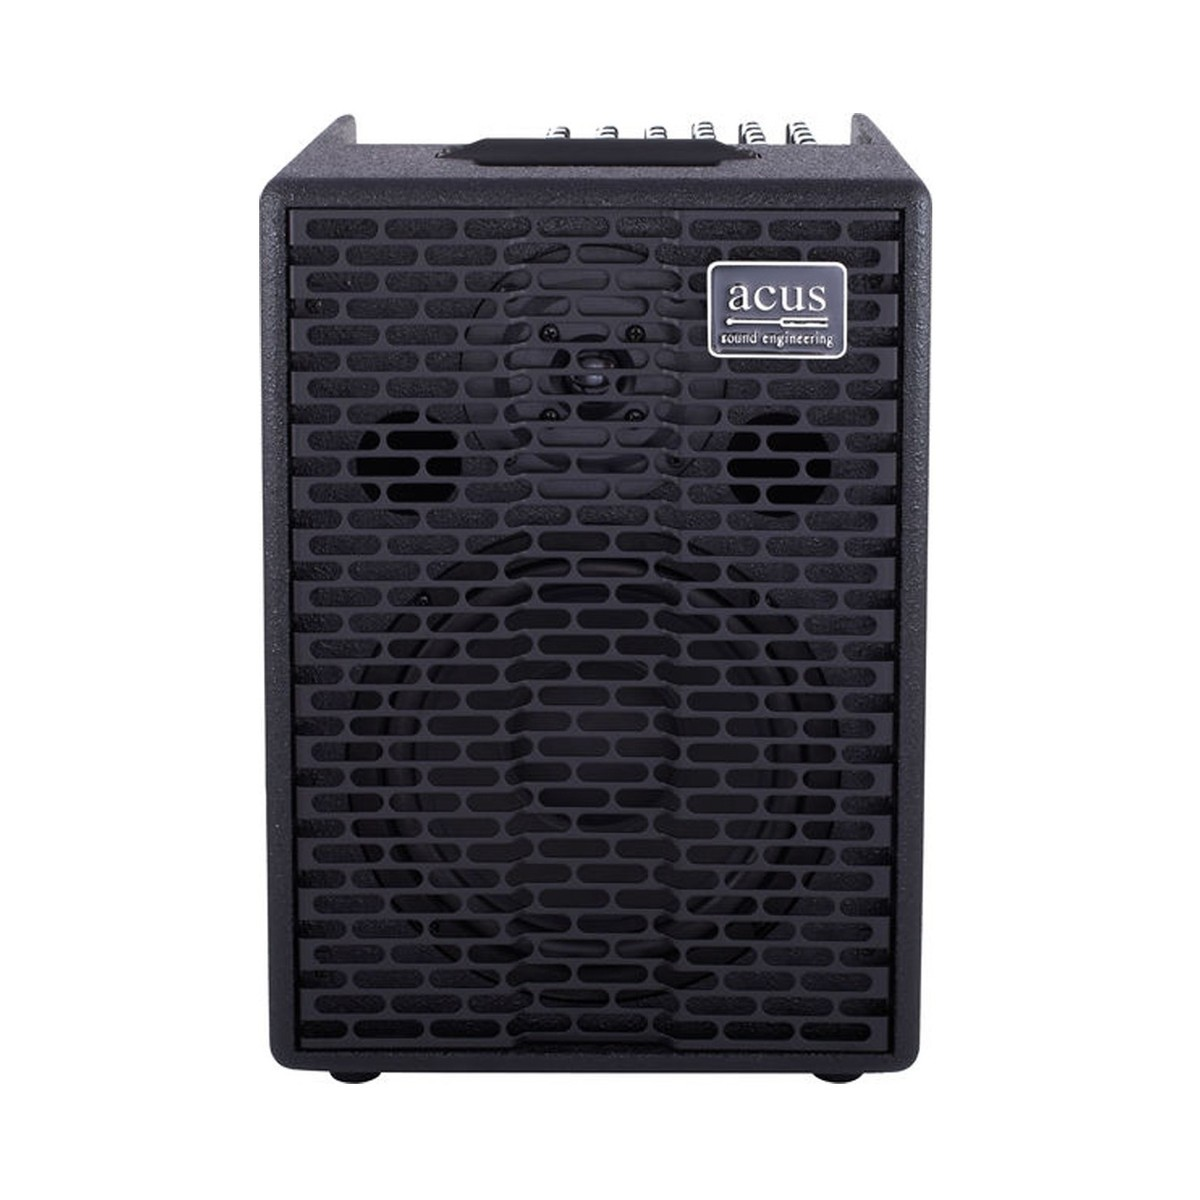 Acus One for Strings 8 Acoustic Guitar Amplifier (black)